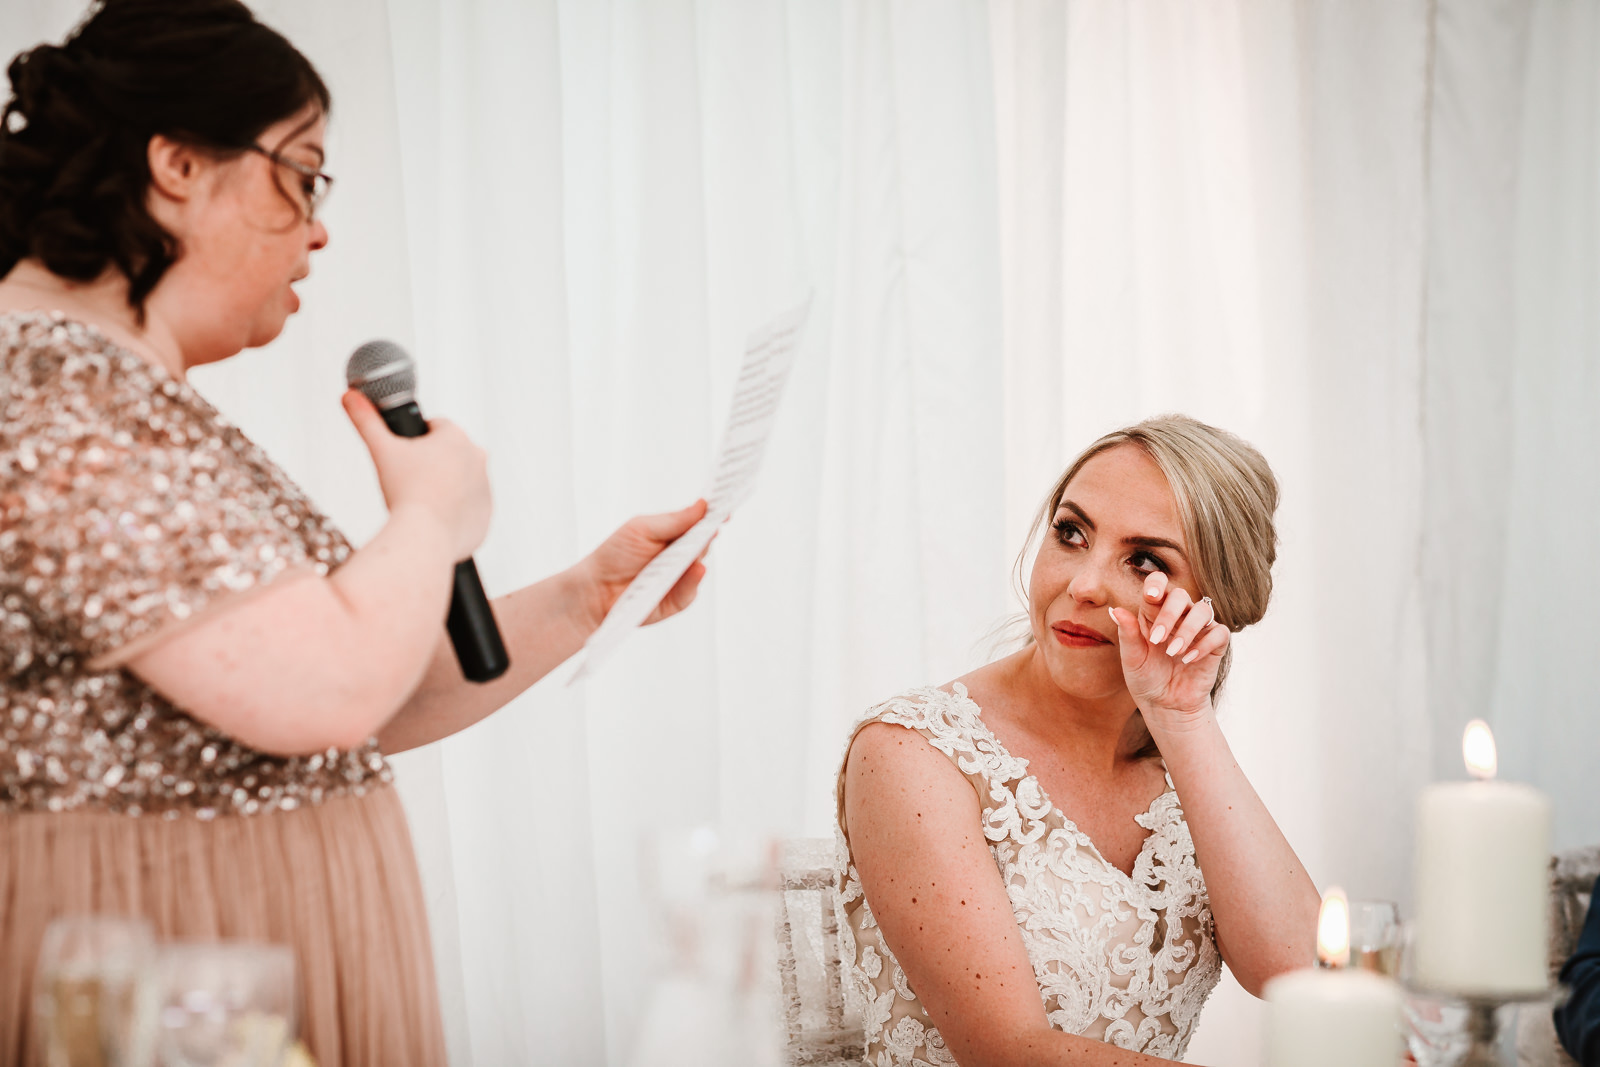 Emotional speech from the brides sister